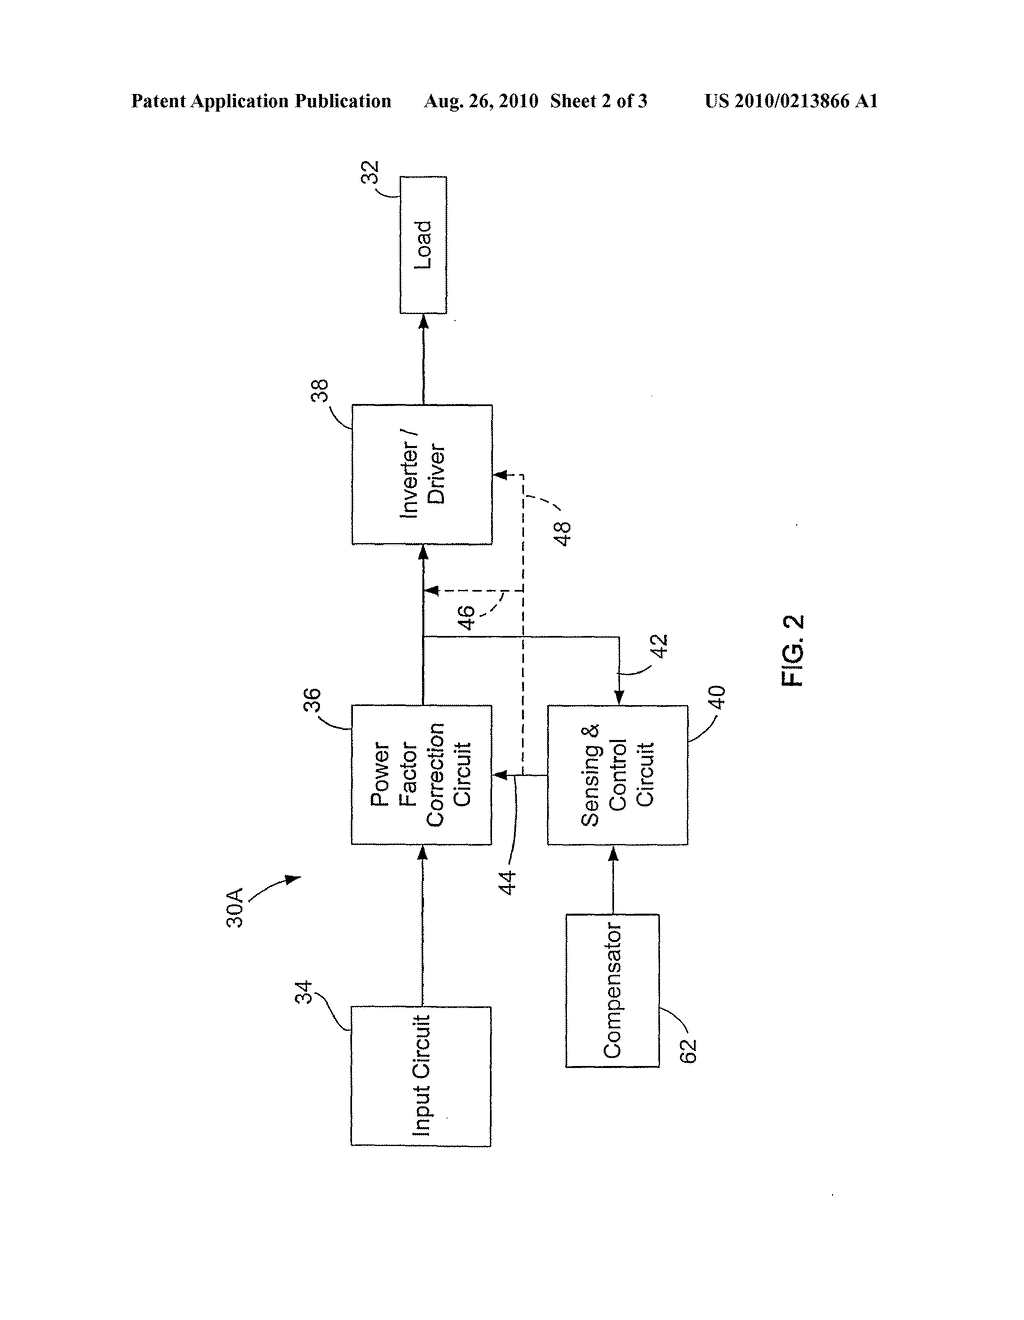 Ballast And Control Method Apparatus For Example Anti Schematic Arcing Electronic Diagram Image 03